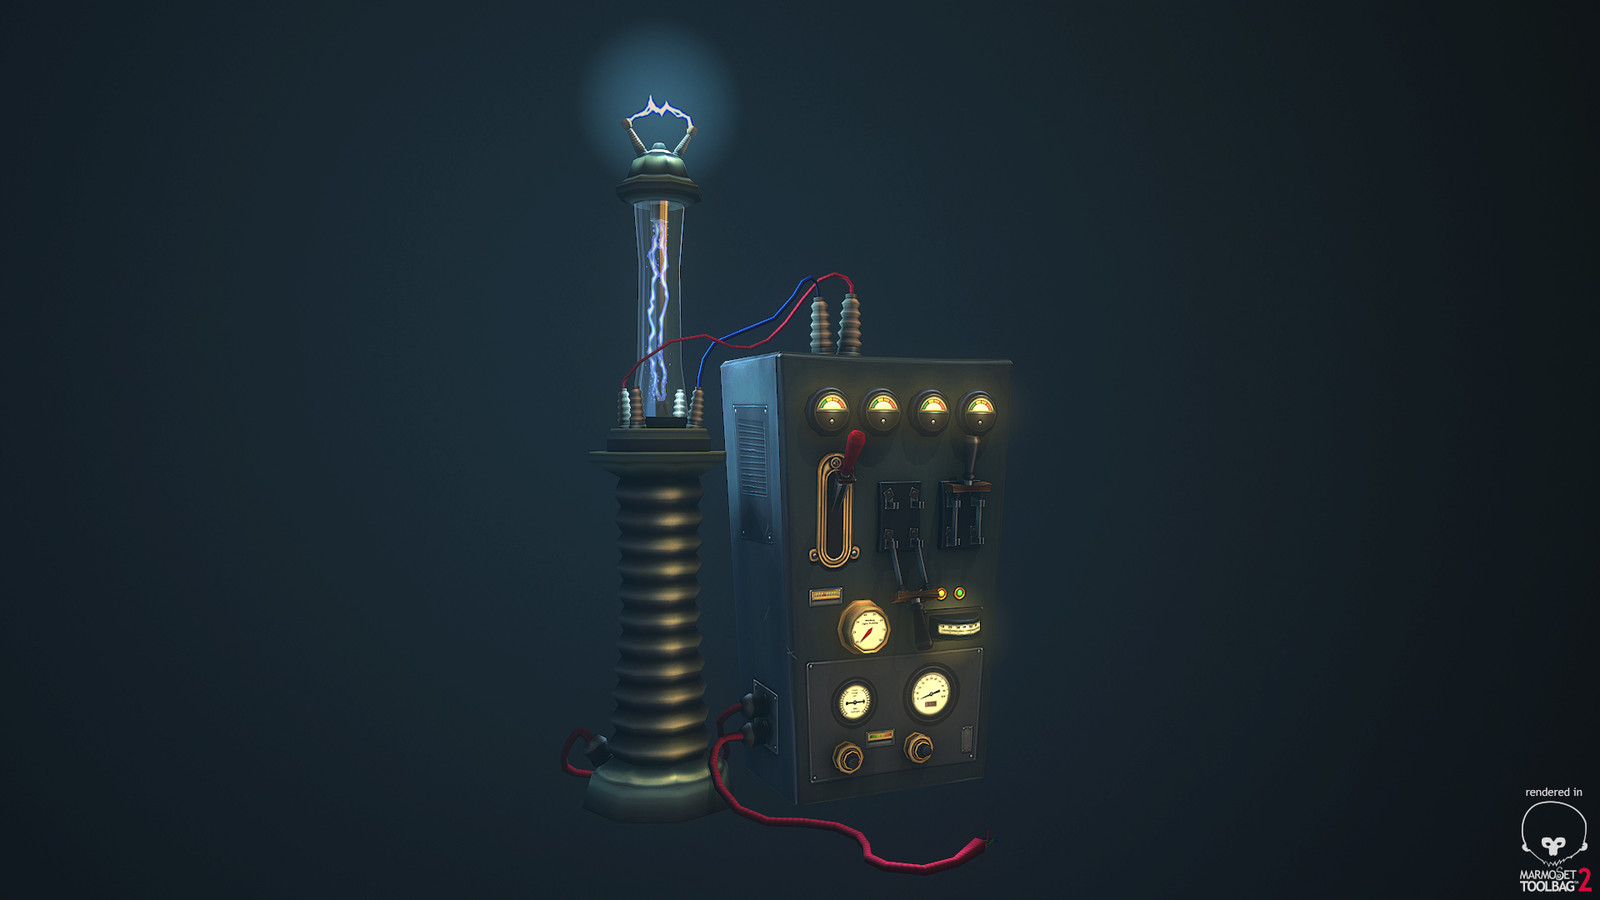 Tesla's Lab - This is the first of a set of mad scientist props. More to come!